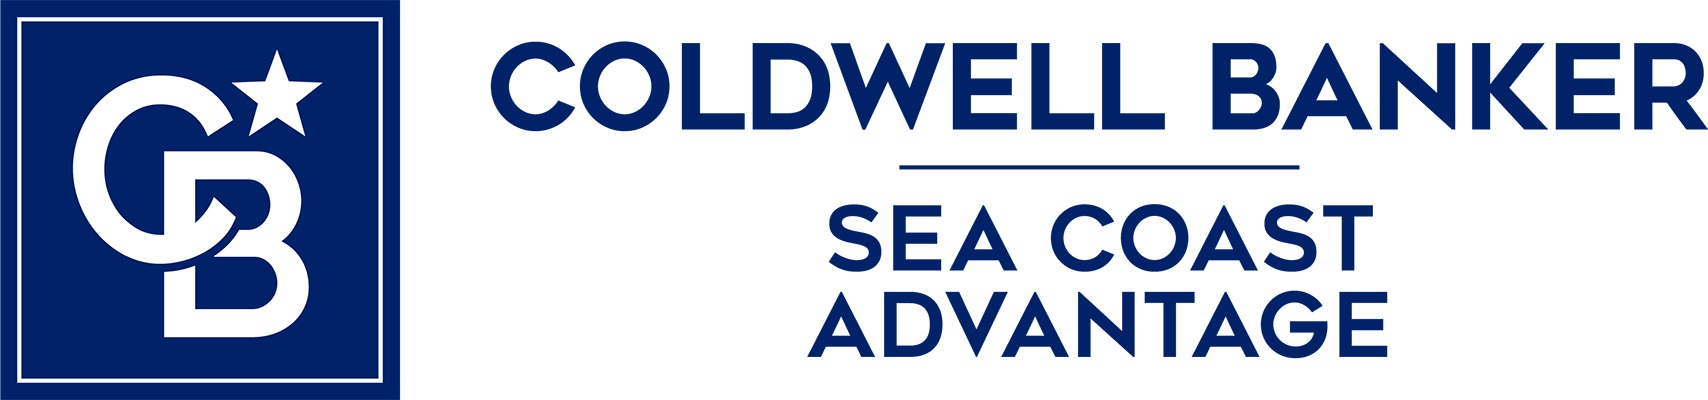 Les Christensen - Coldwell Banker Sea Coast Advantage Realty Logo